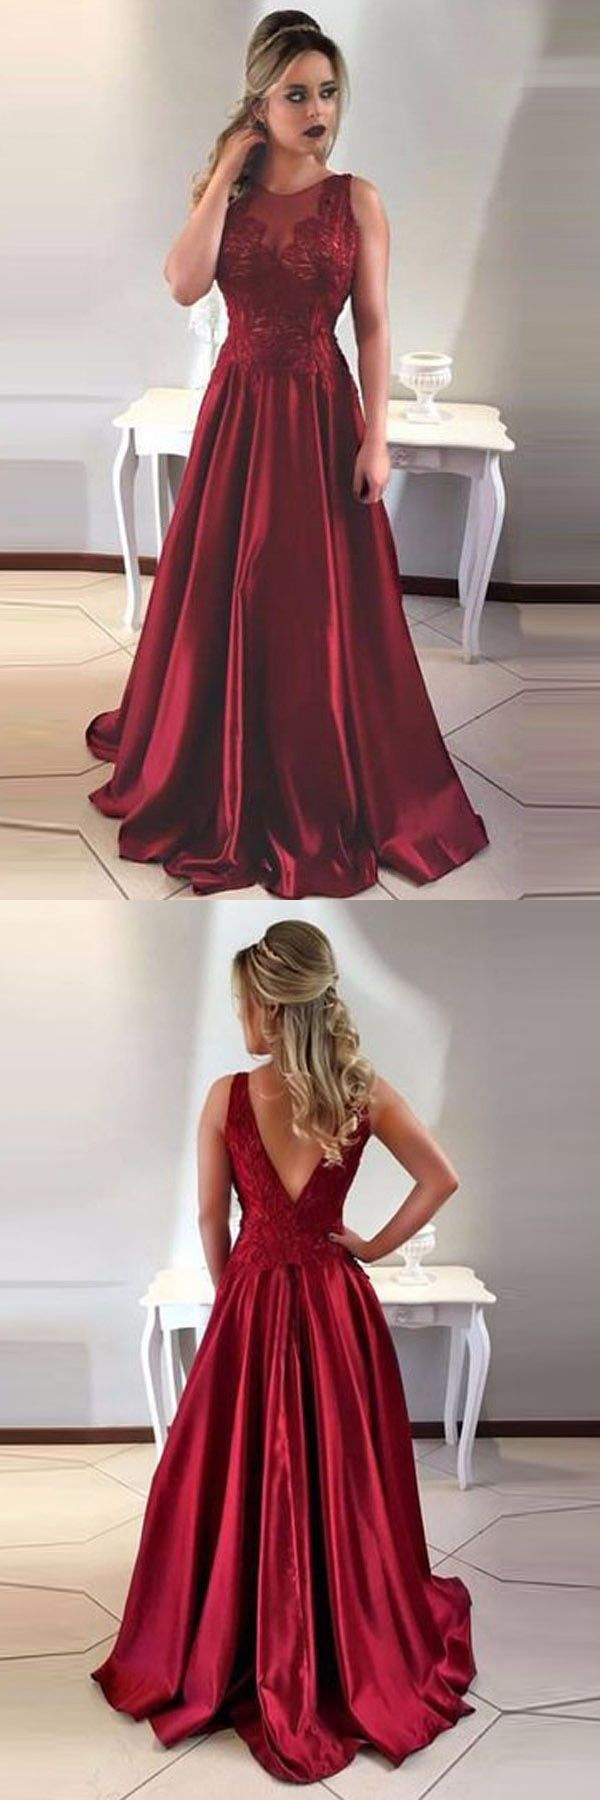 Red satin lace v back gown prom dresses pinterest long